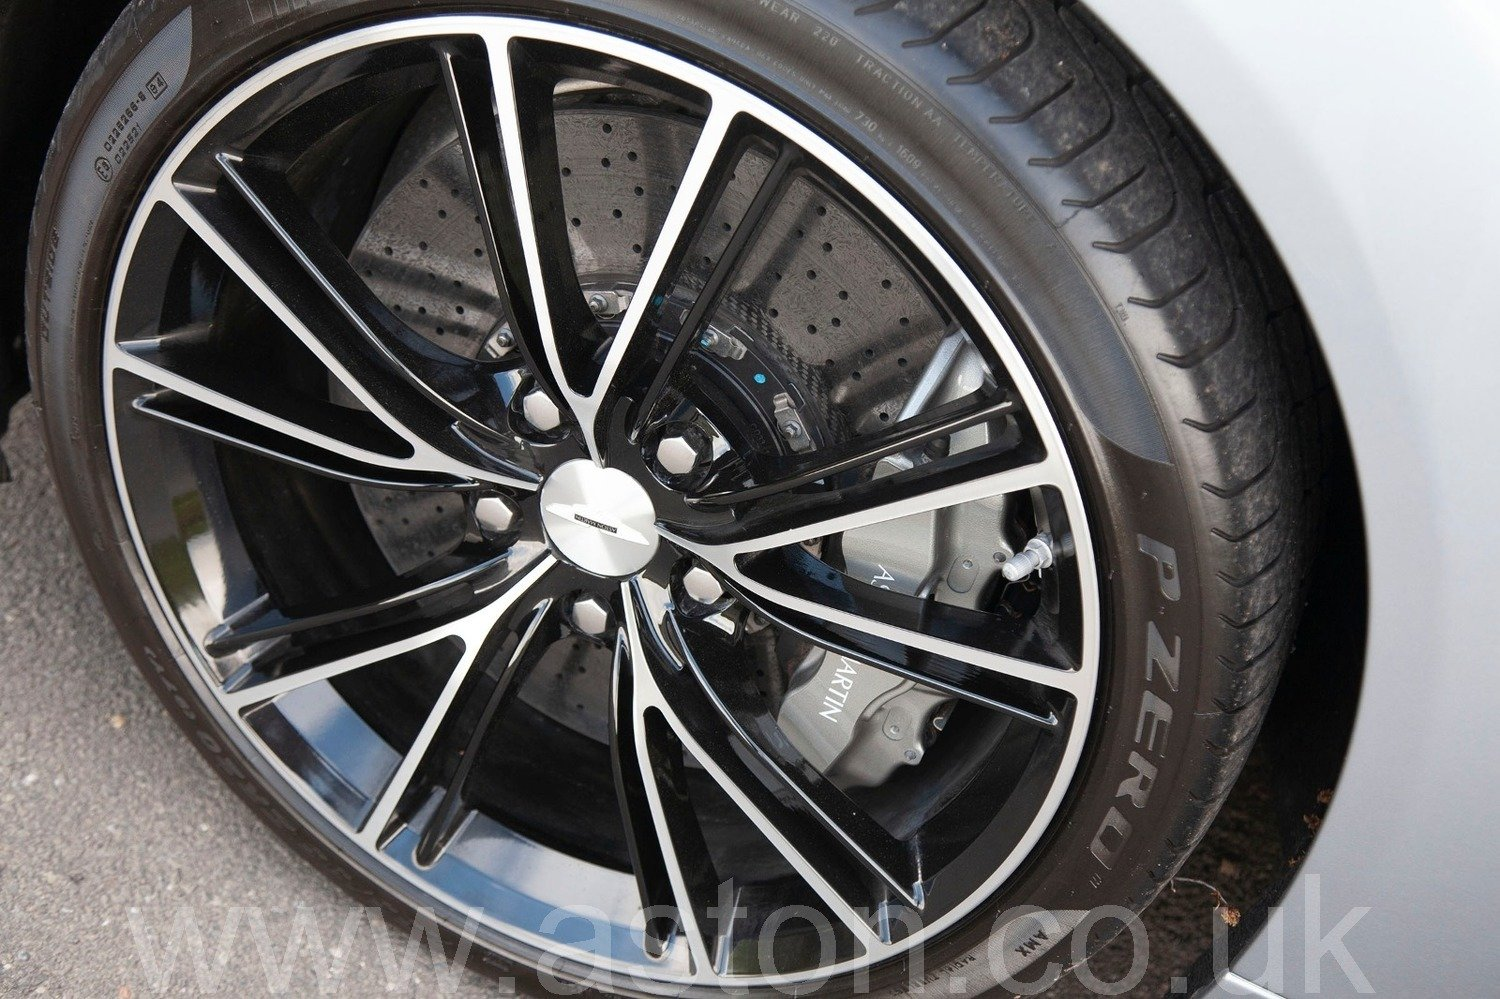 2013 Vanquish Centenary For Sale (picture 4 of 6)